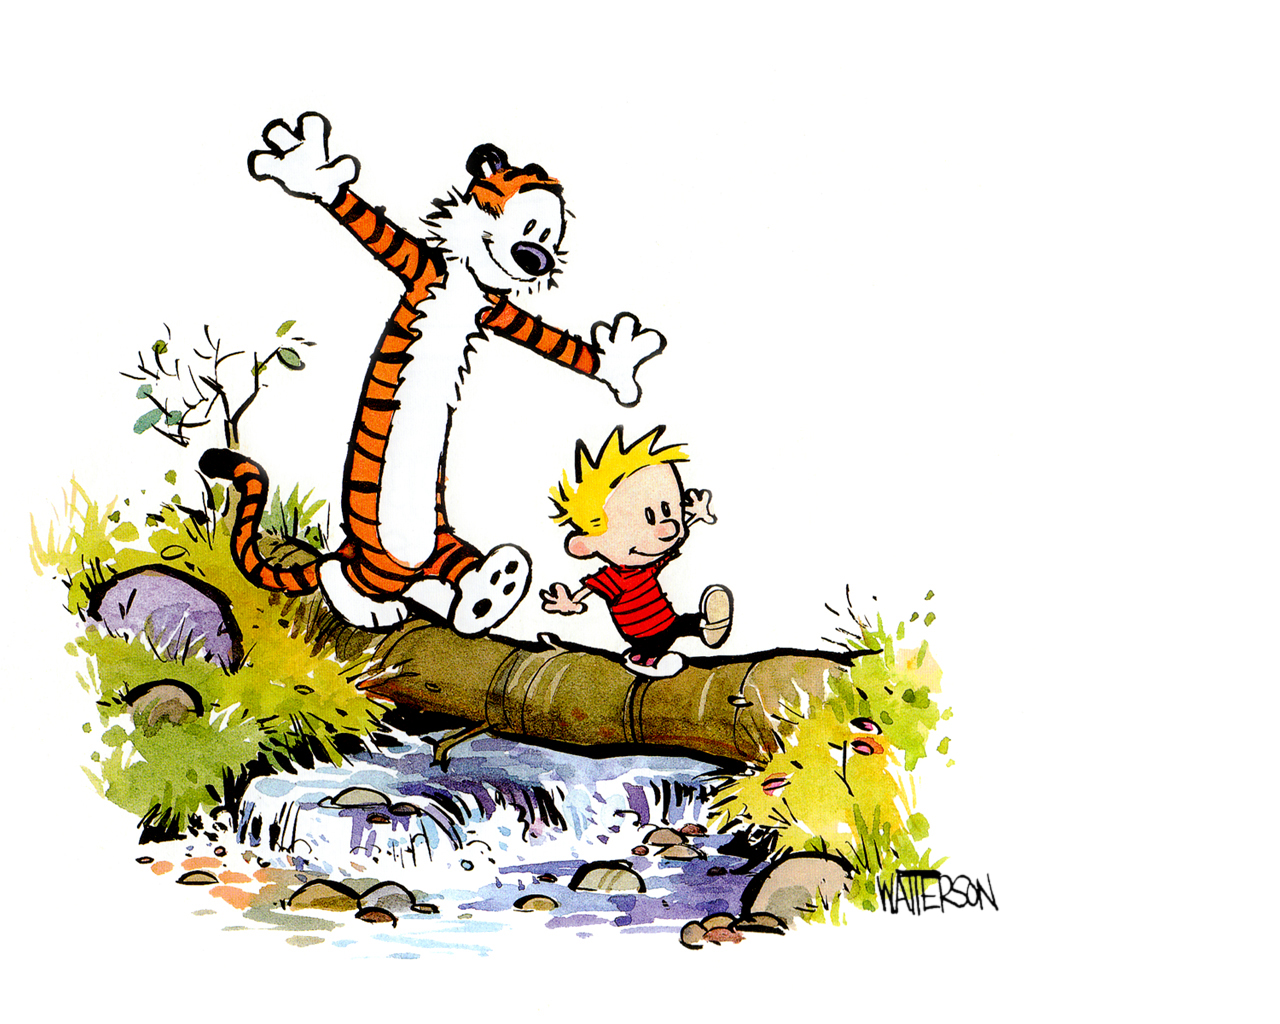 Image of Calvin And Hobbes Clipart #5754, Calvin And Hobbes.